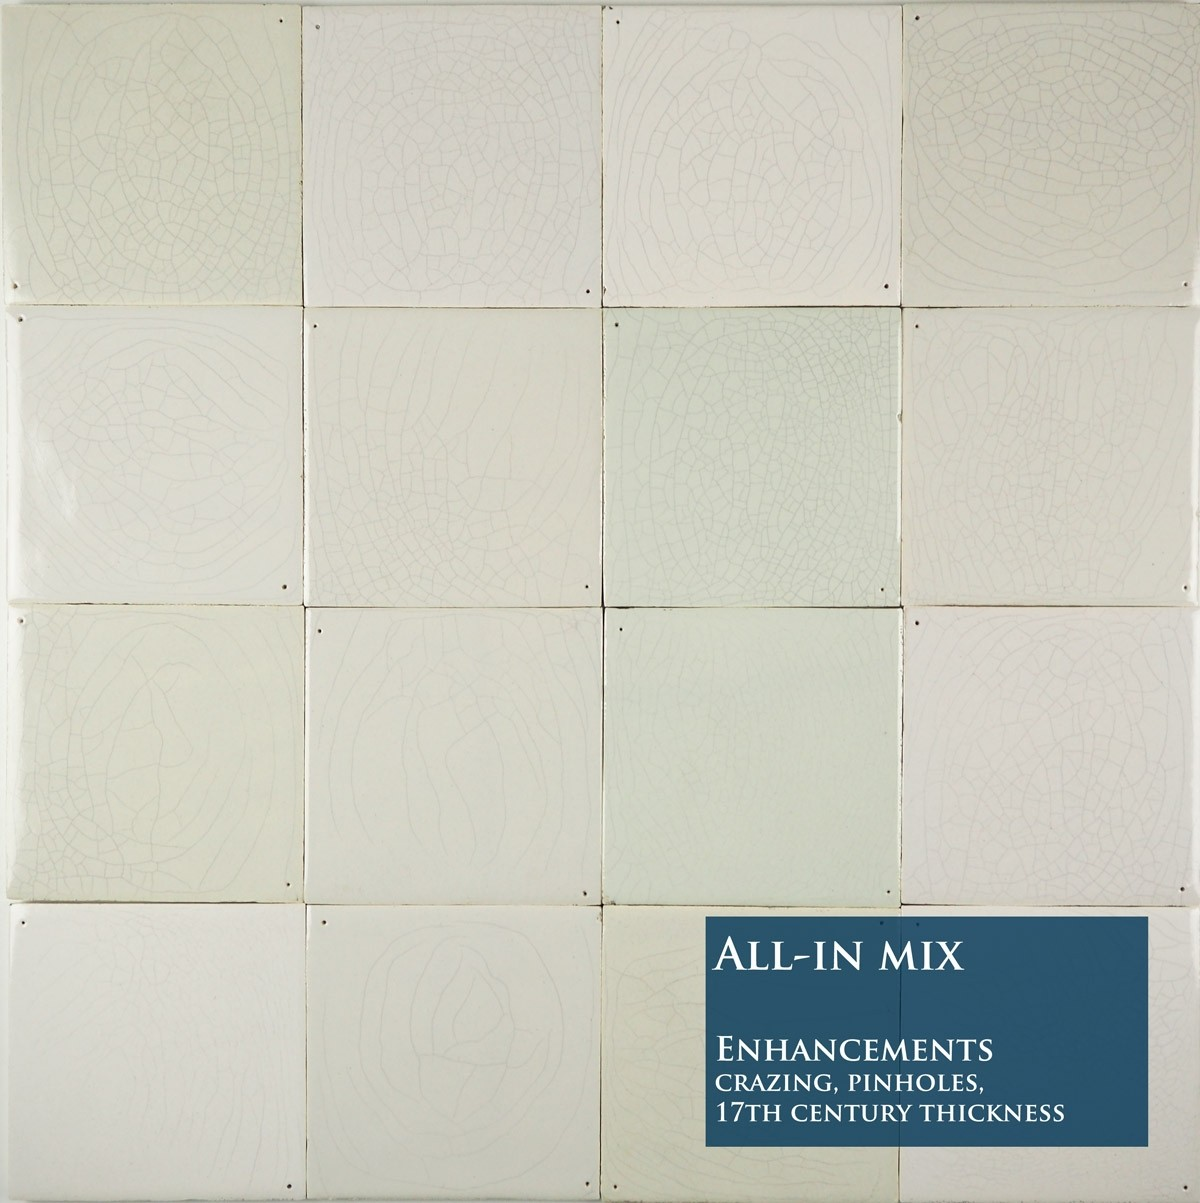 Delft plain white wall tiles in a colourful mix with all shades ...